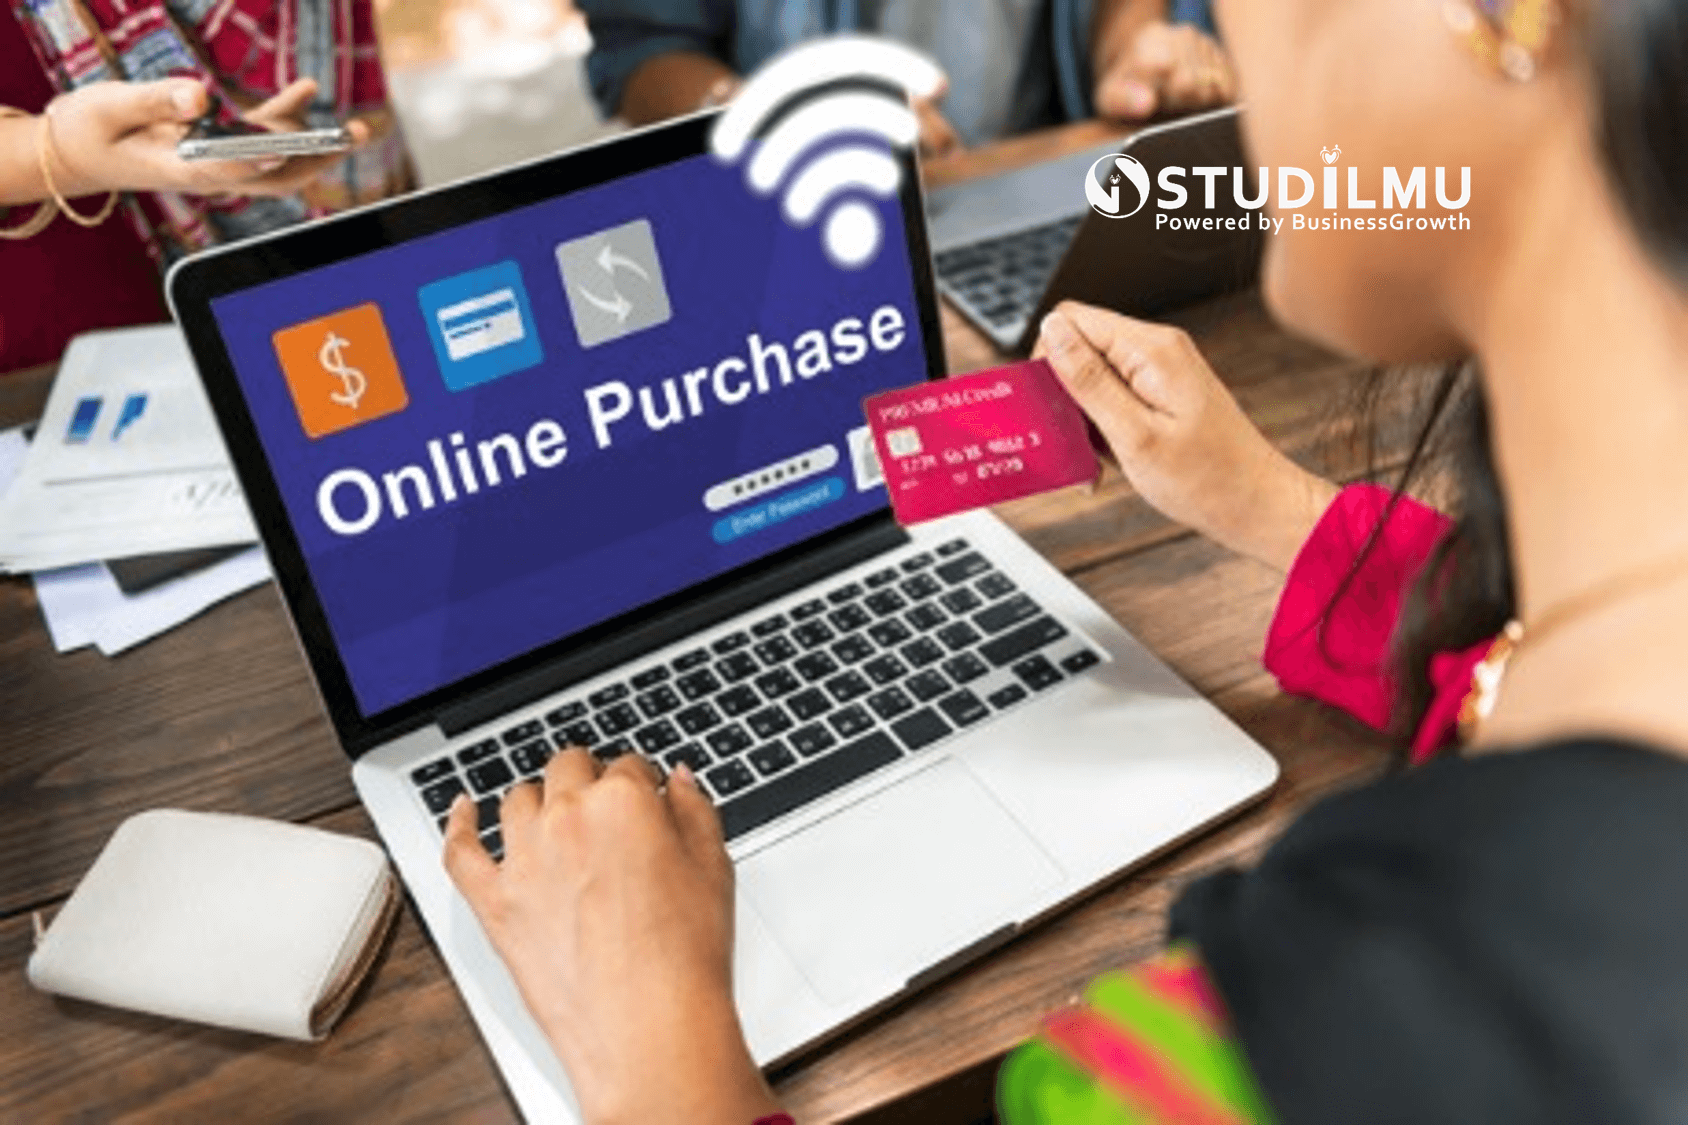 STUDILMU Career Advice - 5 Dampak E-commerce Indonesia